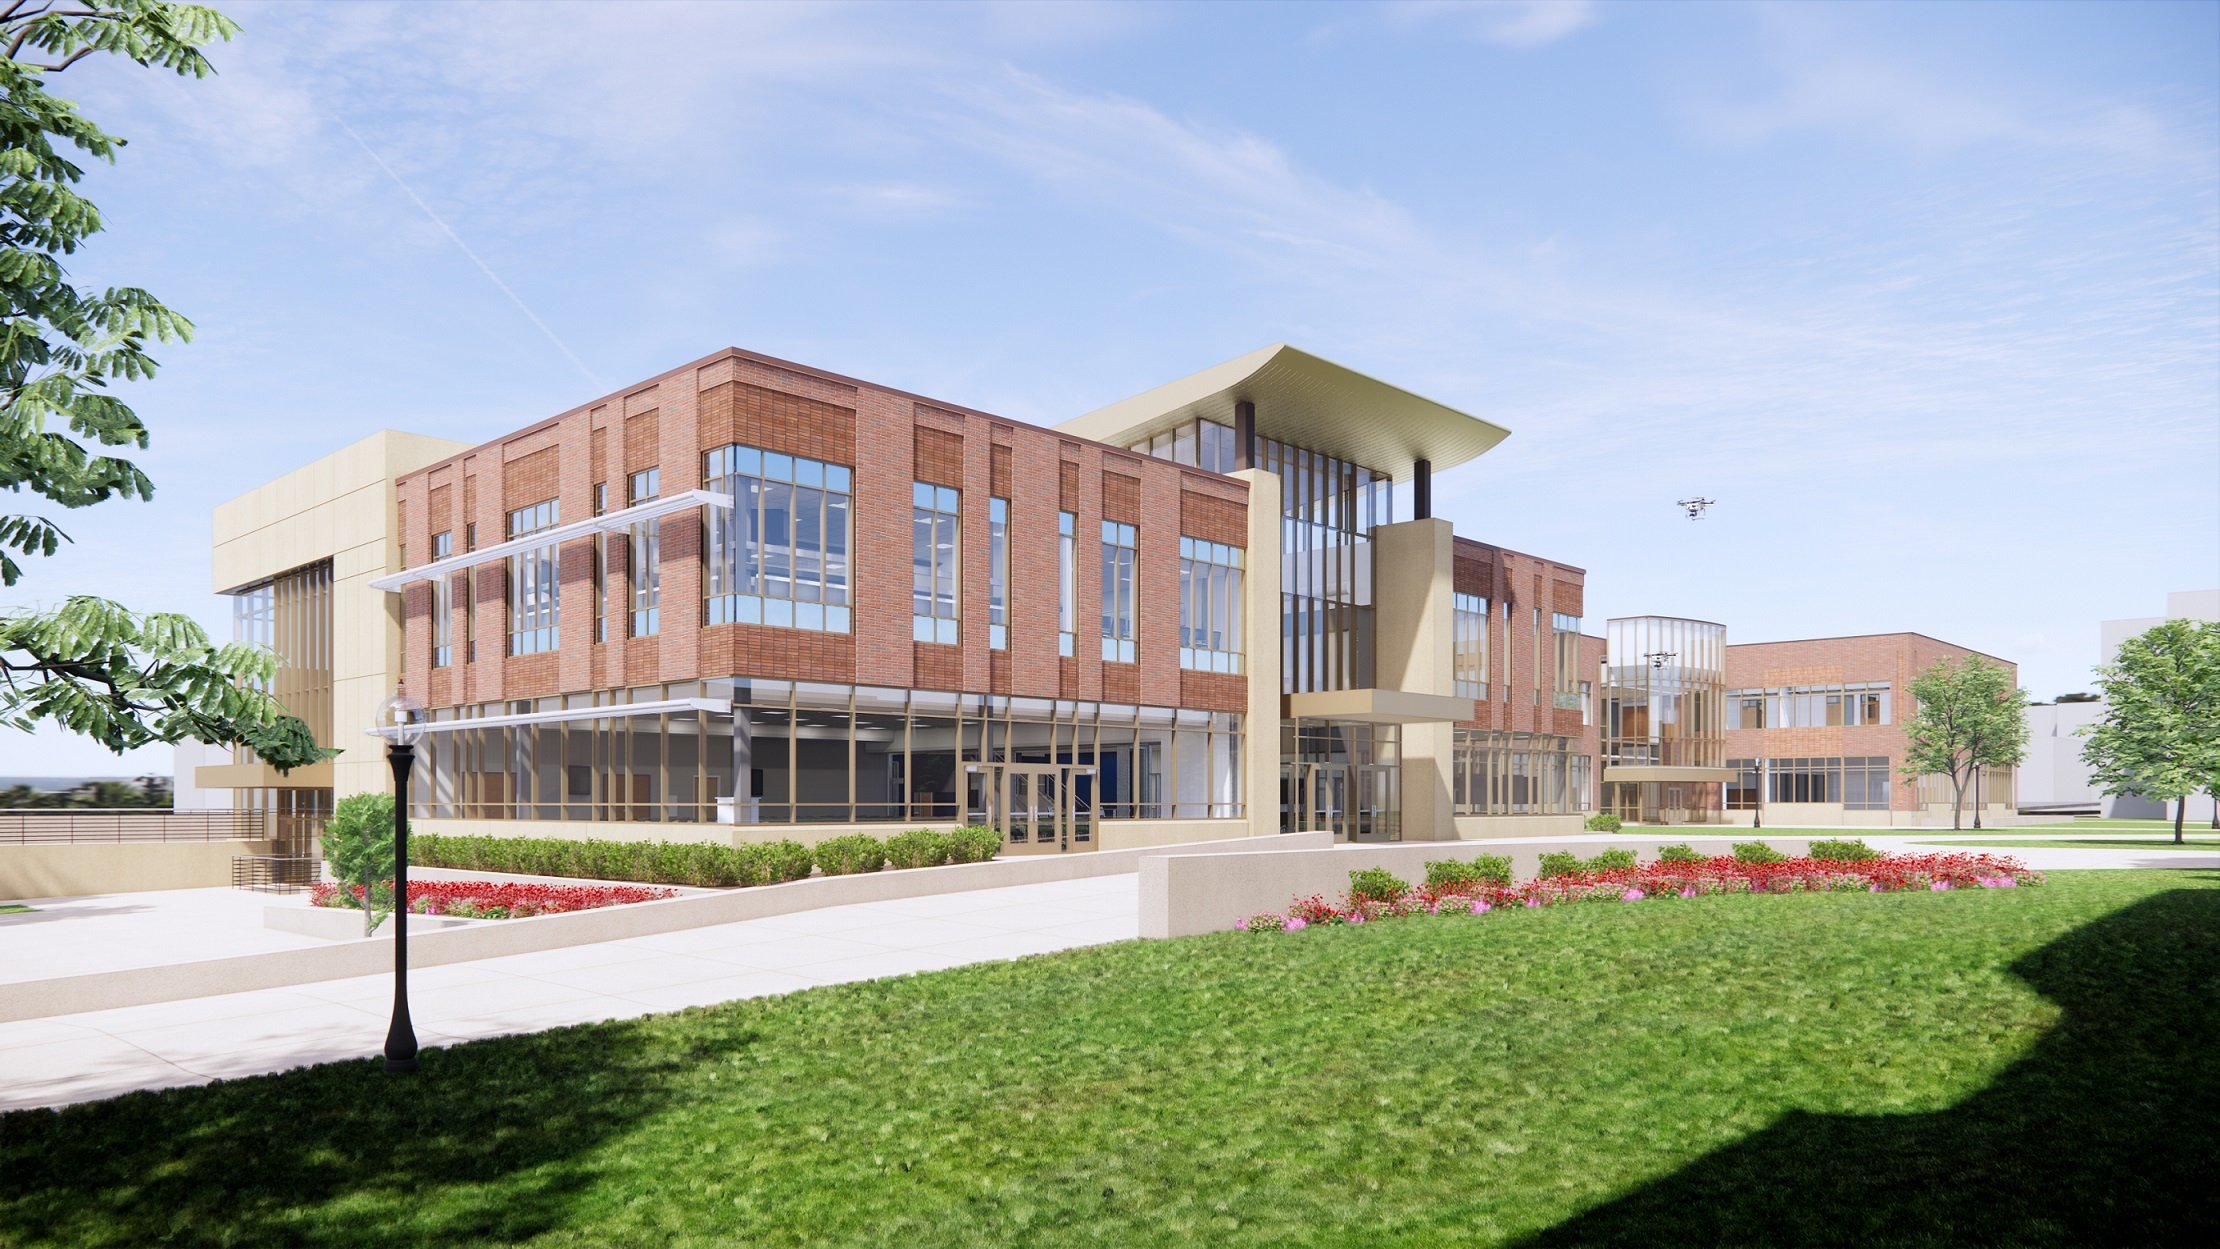 Rendering of Aeronautics and Engineering Building addition, courtesy of DS Architecture LLC